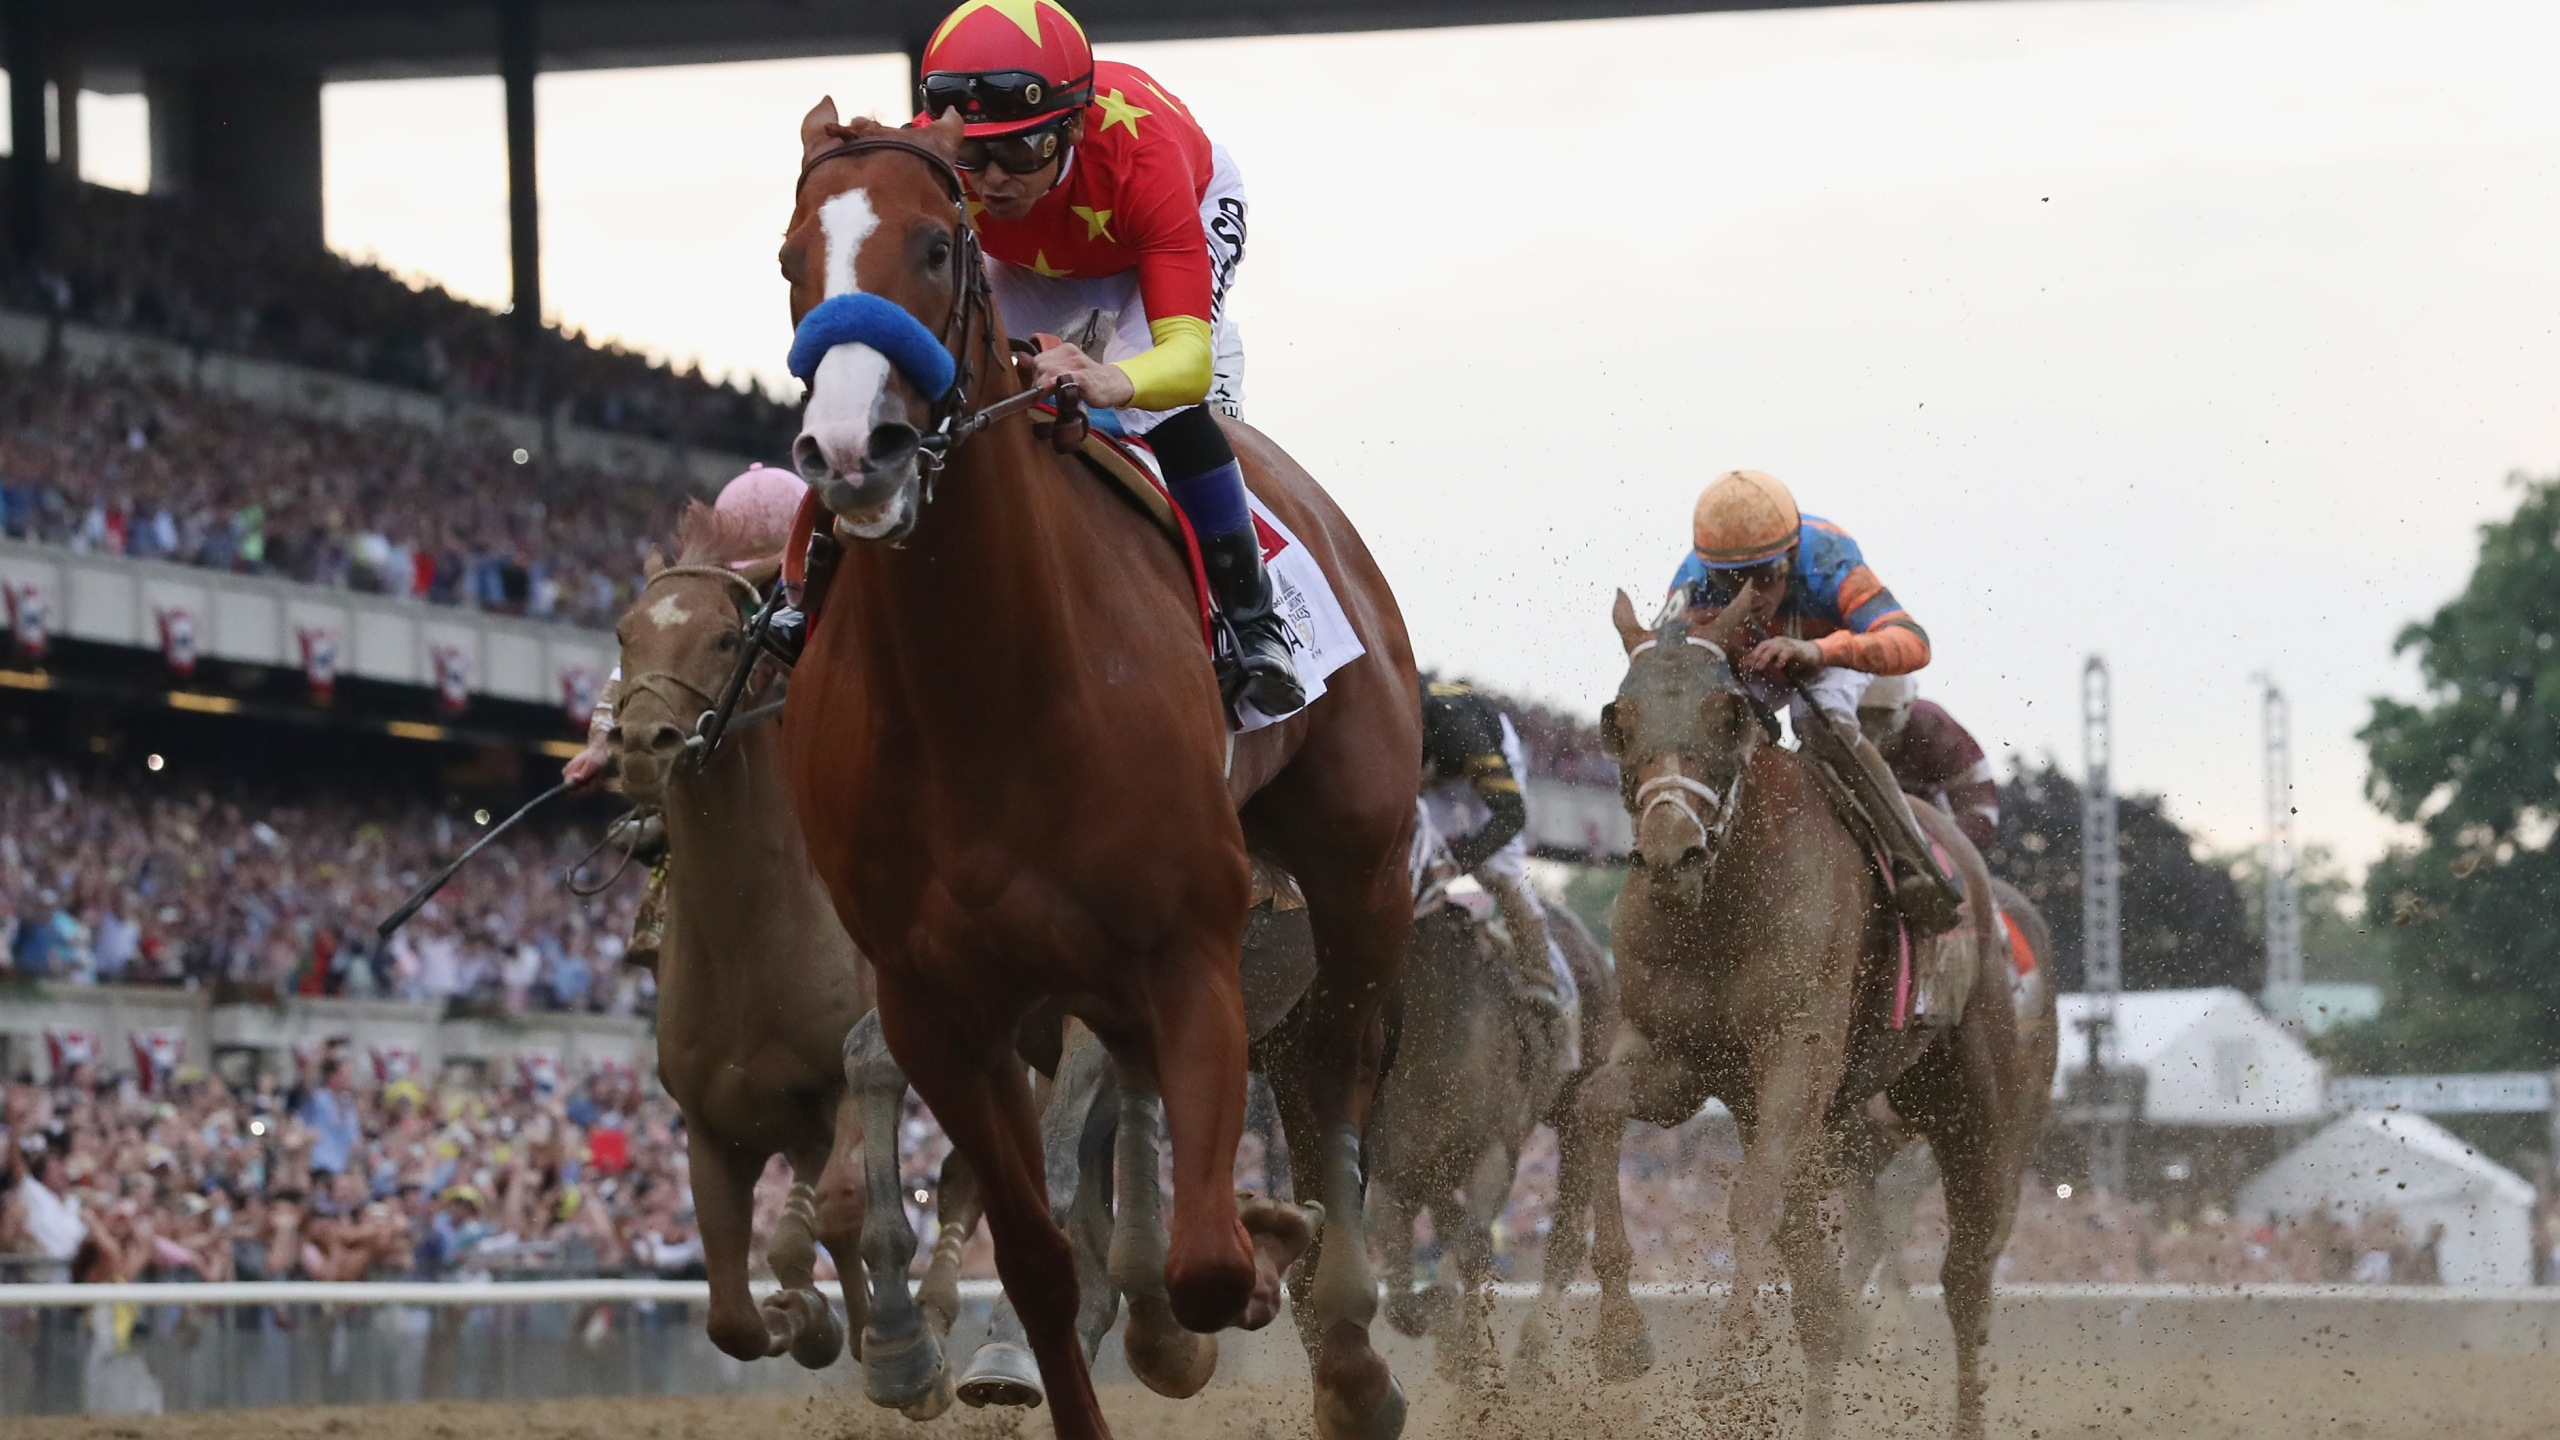 Justify #1, ridden by jockey Mike Smith crosses the finish line to win the 150th running of the Belmont Stakes at Belmont Park on June 9, 2018 in Elmont, New York. (Credit: Rob Carr/Getty Images)